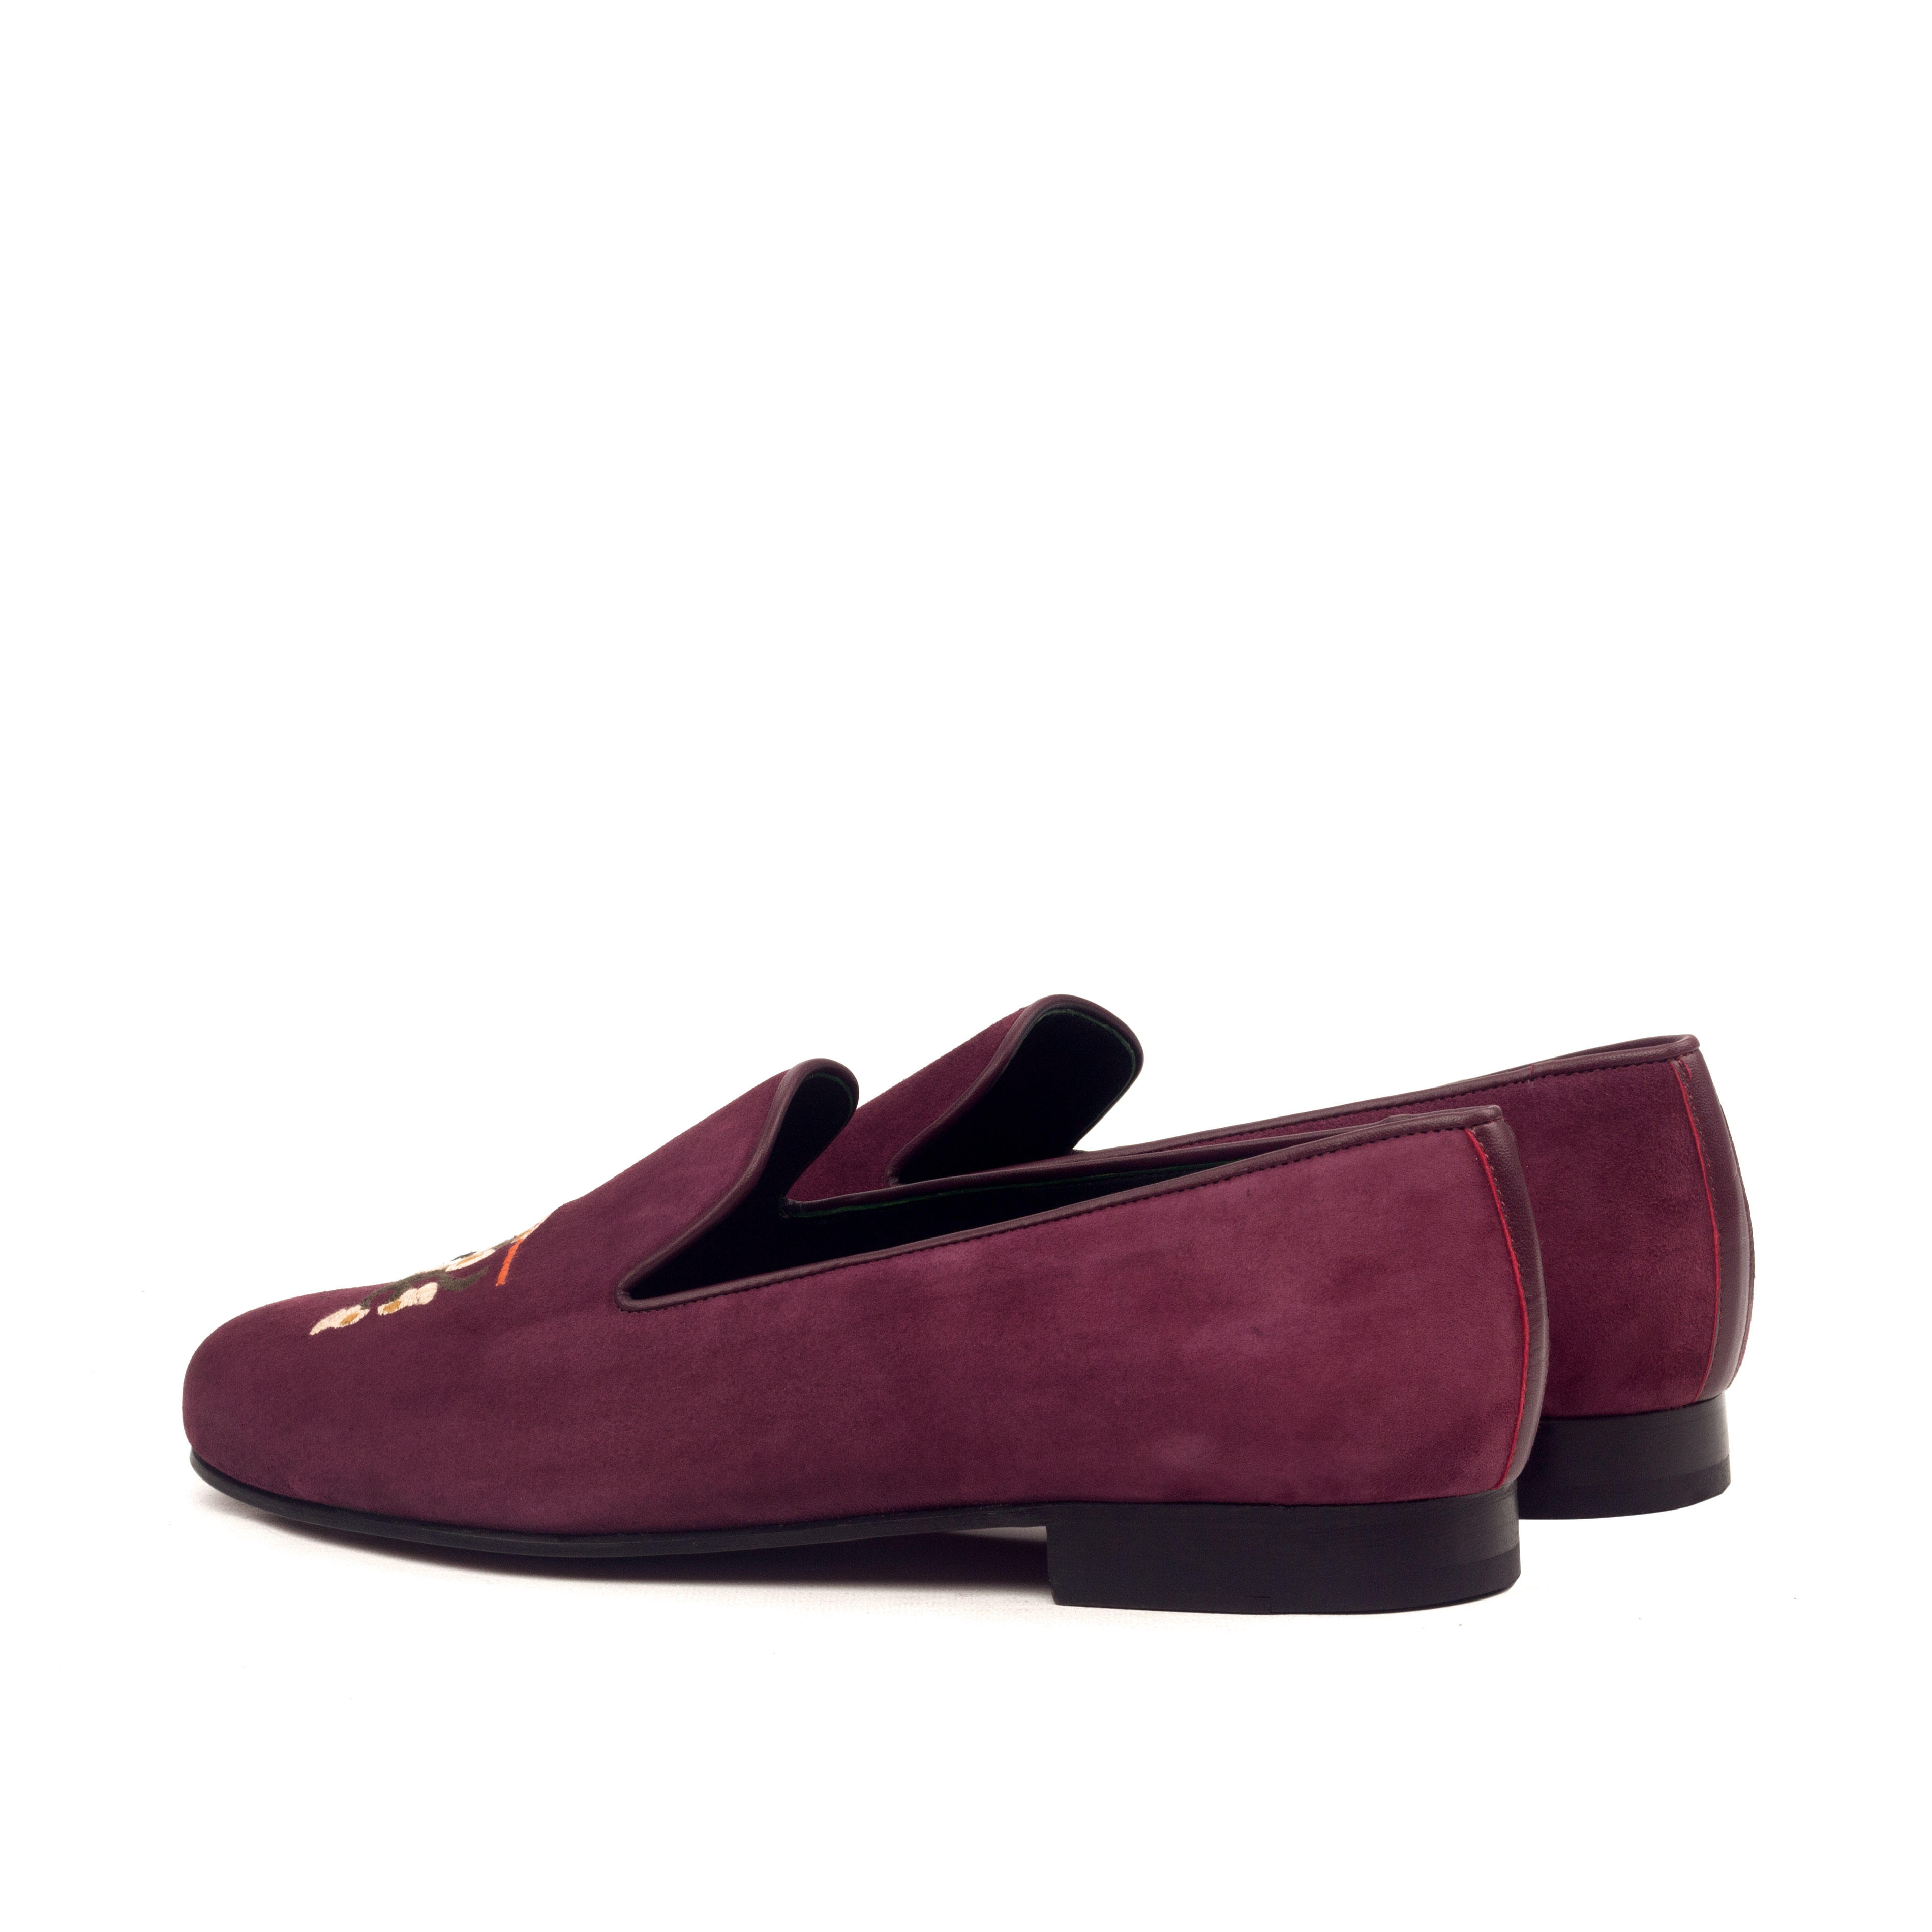 Manor of London 'Monkeying Around' Wine  Suede Leather Luxury Slip On Slippers Back Side View